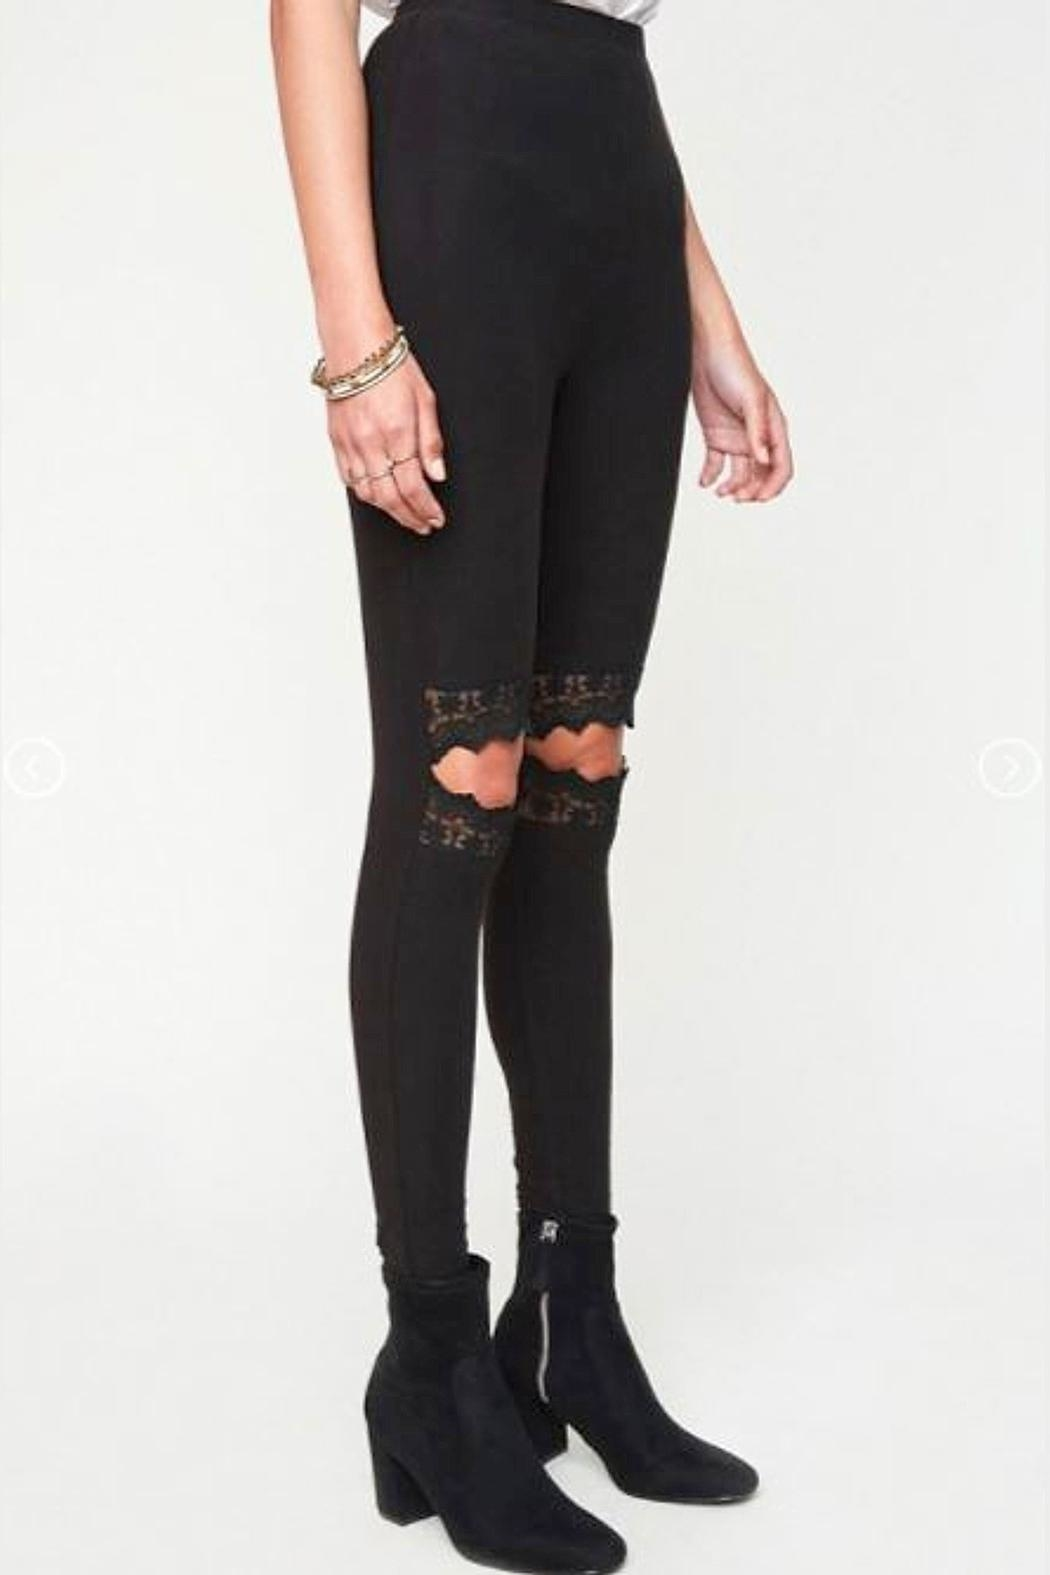 Hayden Los Angeles Lace Cut-Out Leggings - Front Full Image